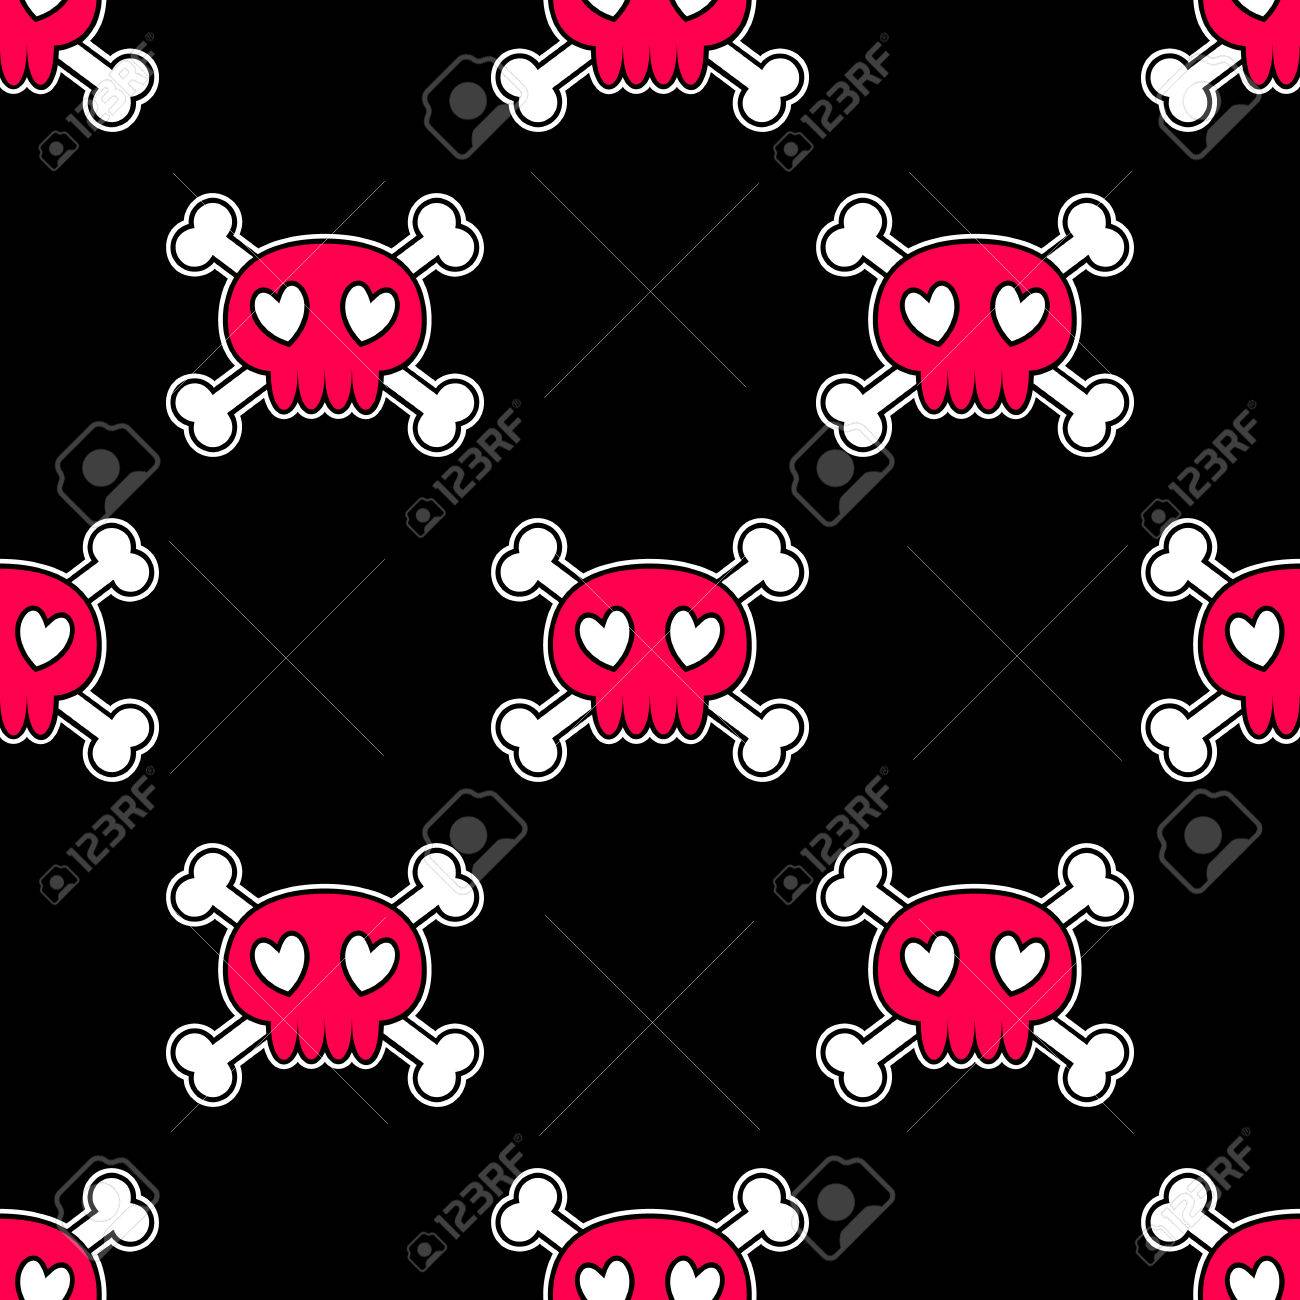 Seamless Halloween Pattern Wallpaper With Pink Skulls On Black Background Tileable Backdrop With Halloween